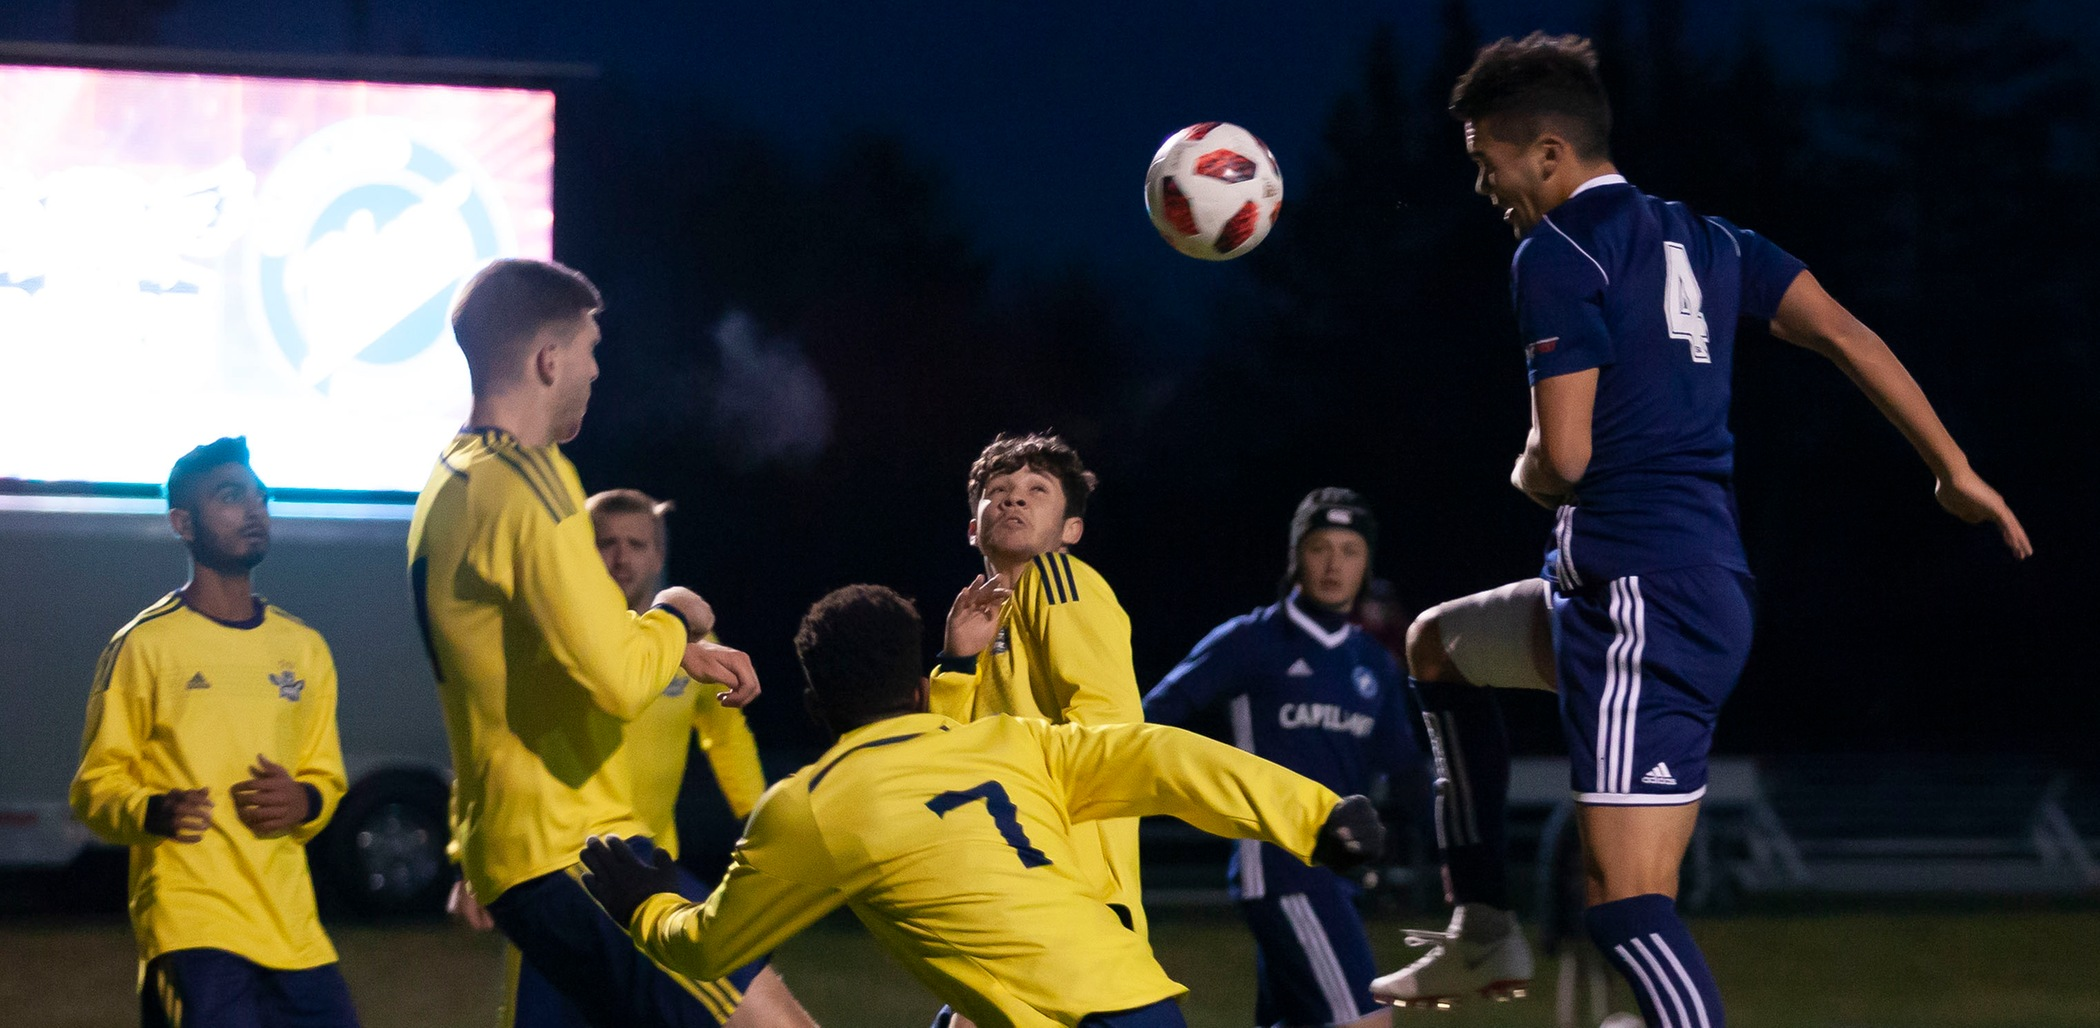 Third-year defender Andres Romo goes up for a header during Capilano's 4-0 win over NAIT in Friday's bronze semifinal match. Photo courtesy the CCAA